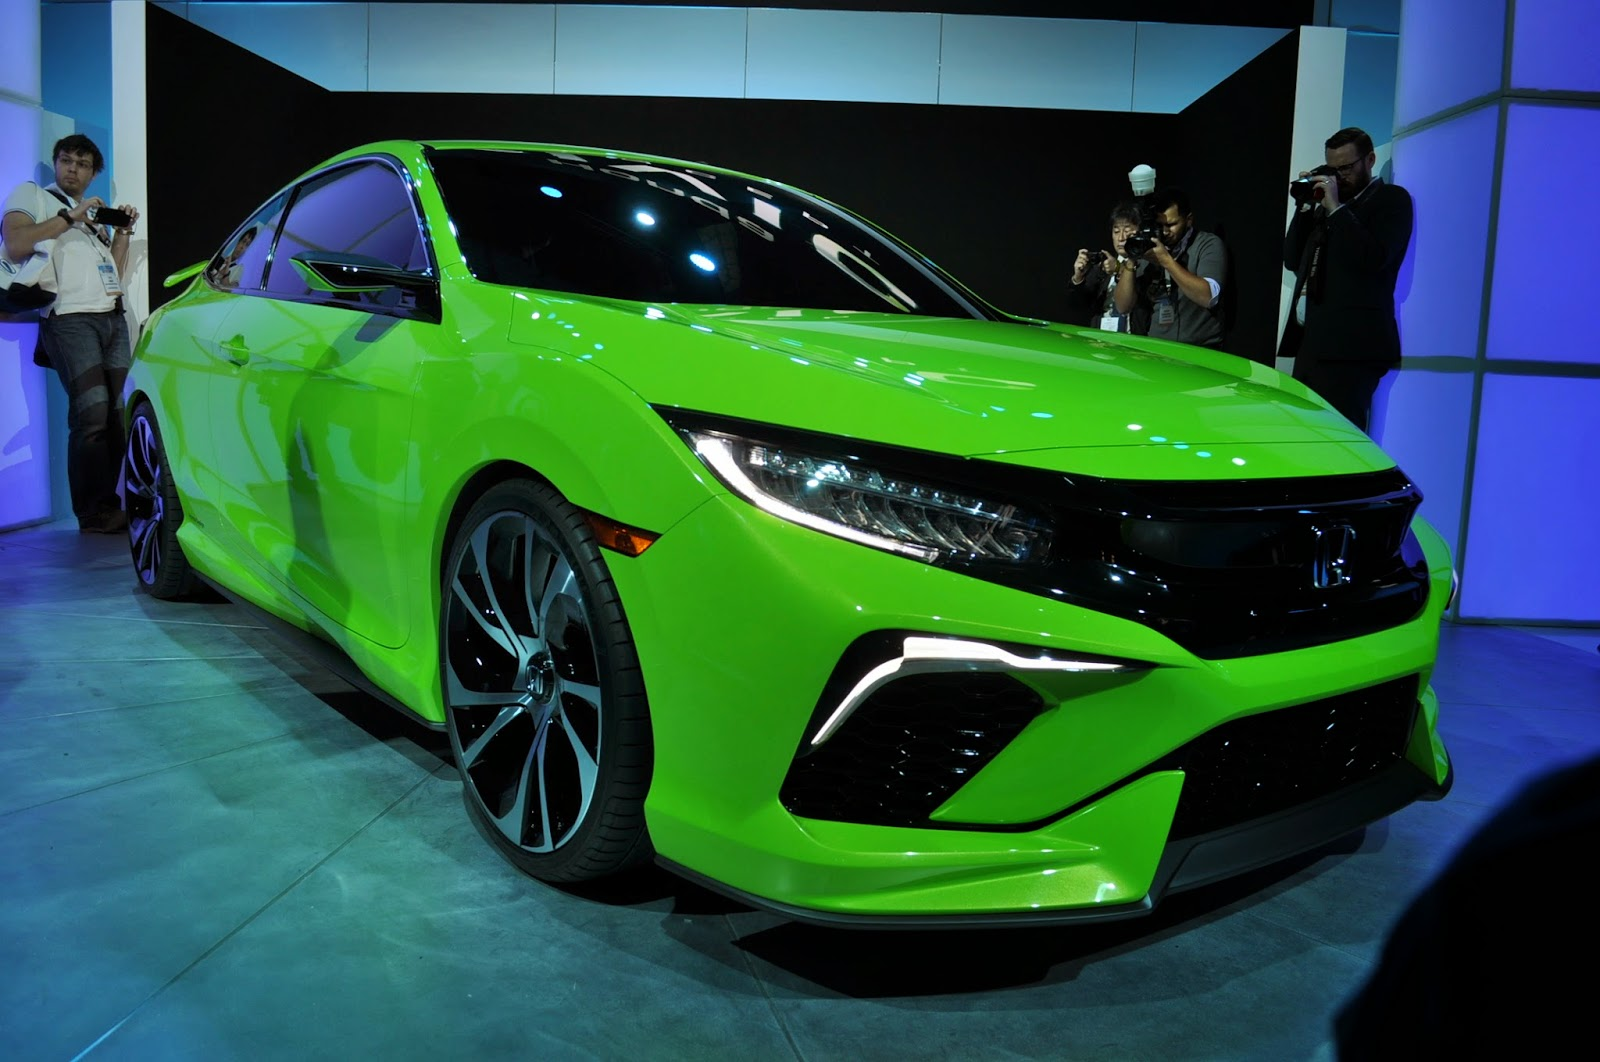 Luxury Car Honda Civic Concept 2015